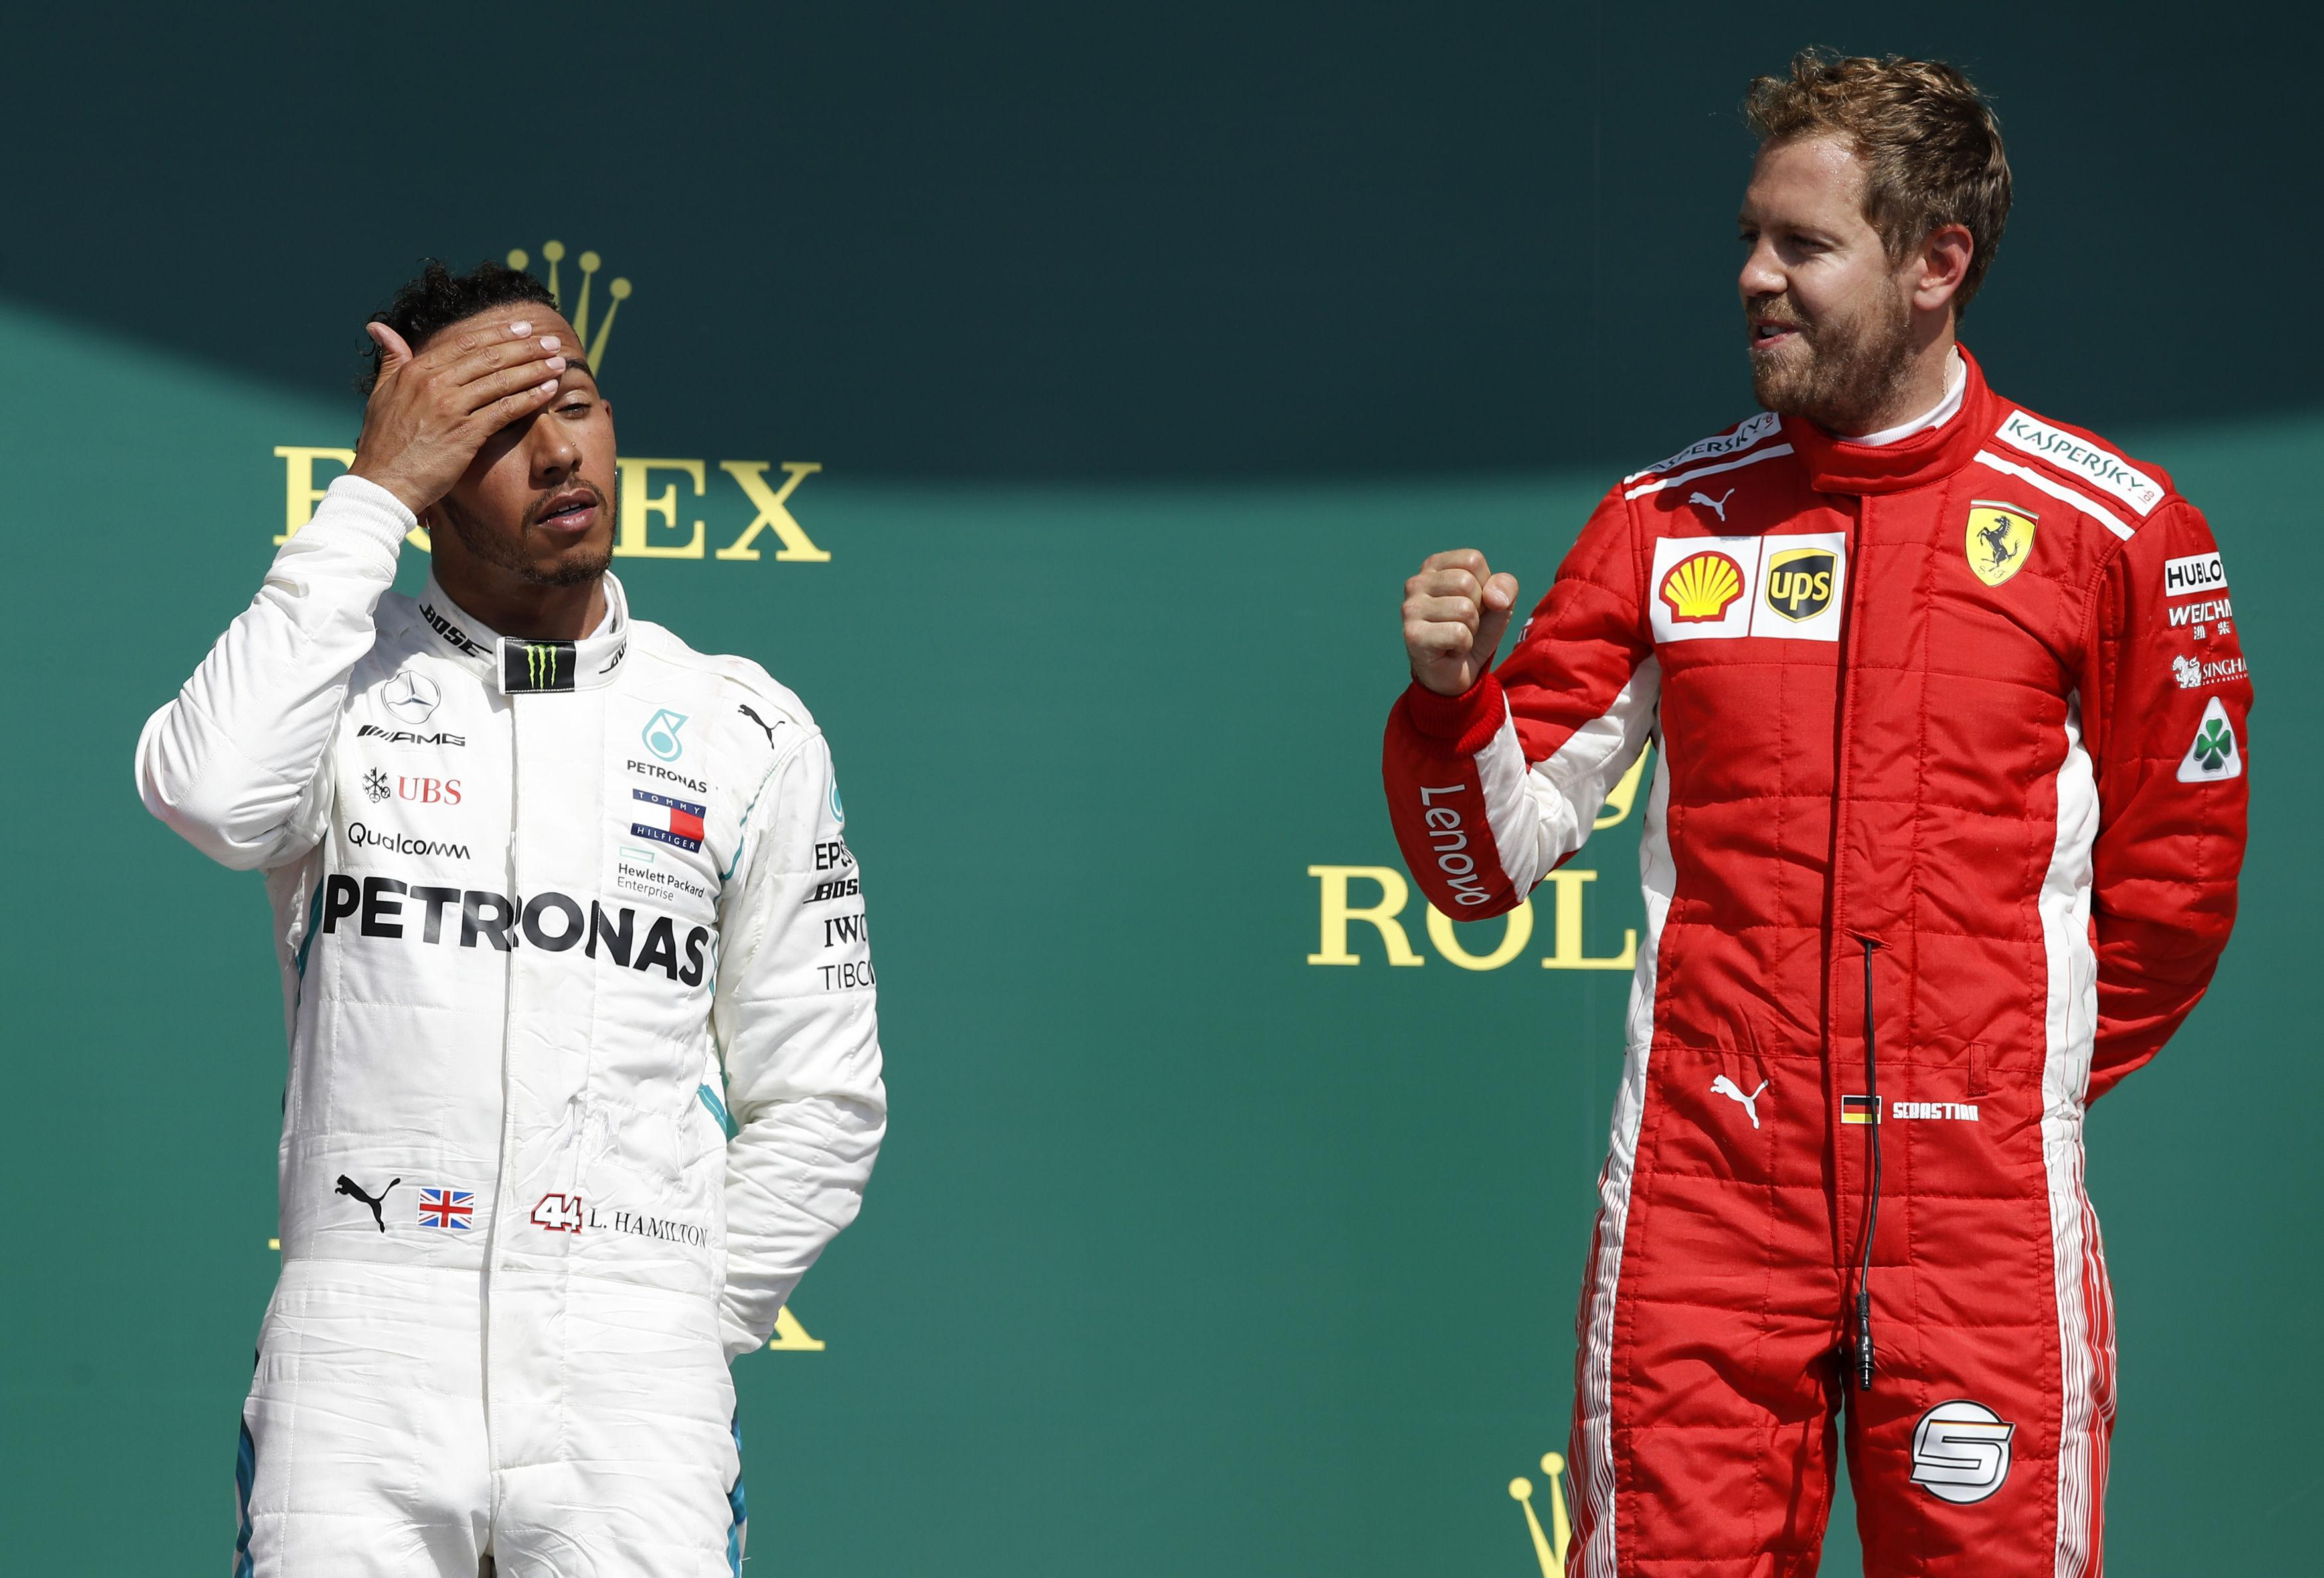 Lewis Hamilton fought back all the way from 18th to second but it still was not enough